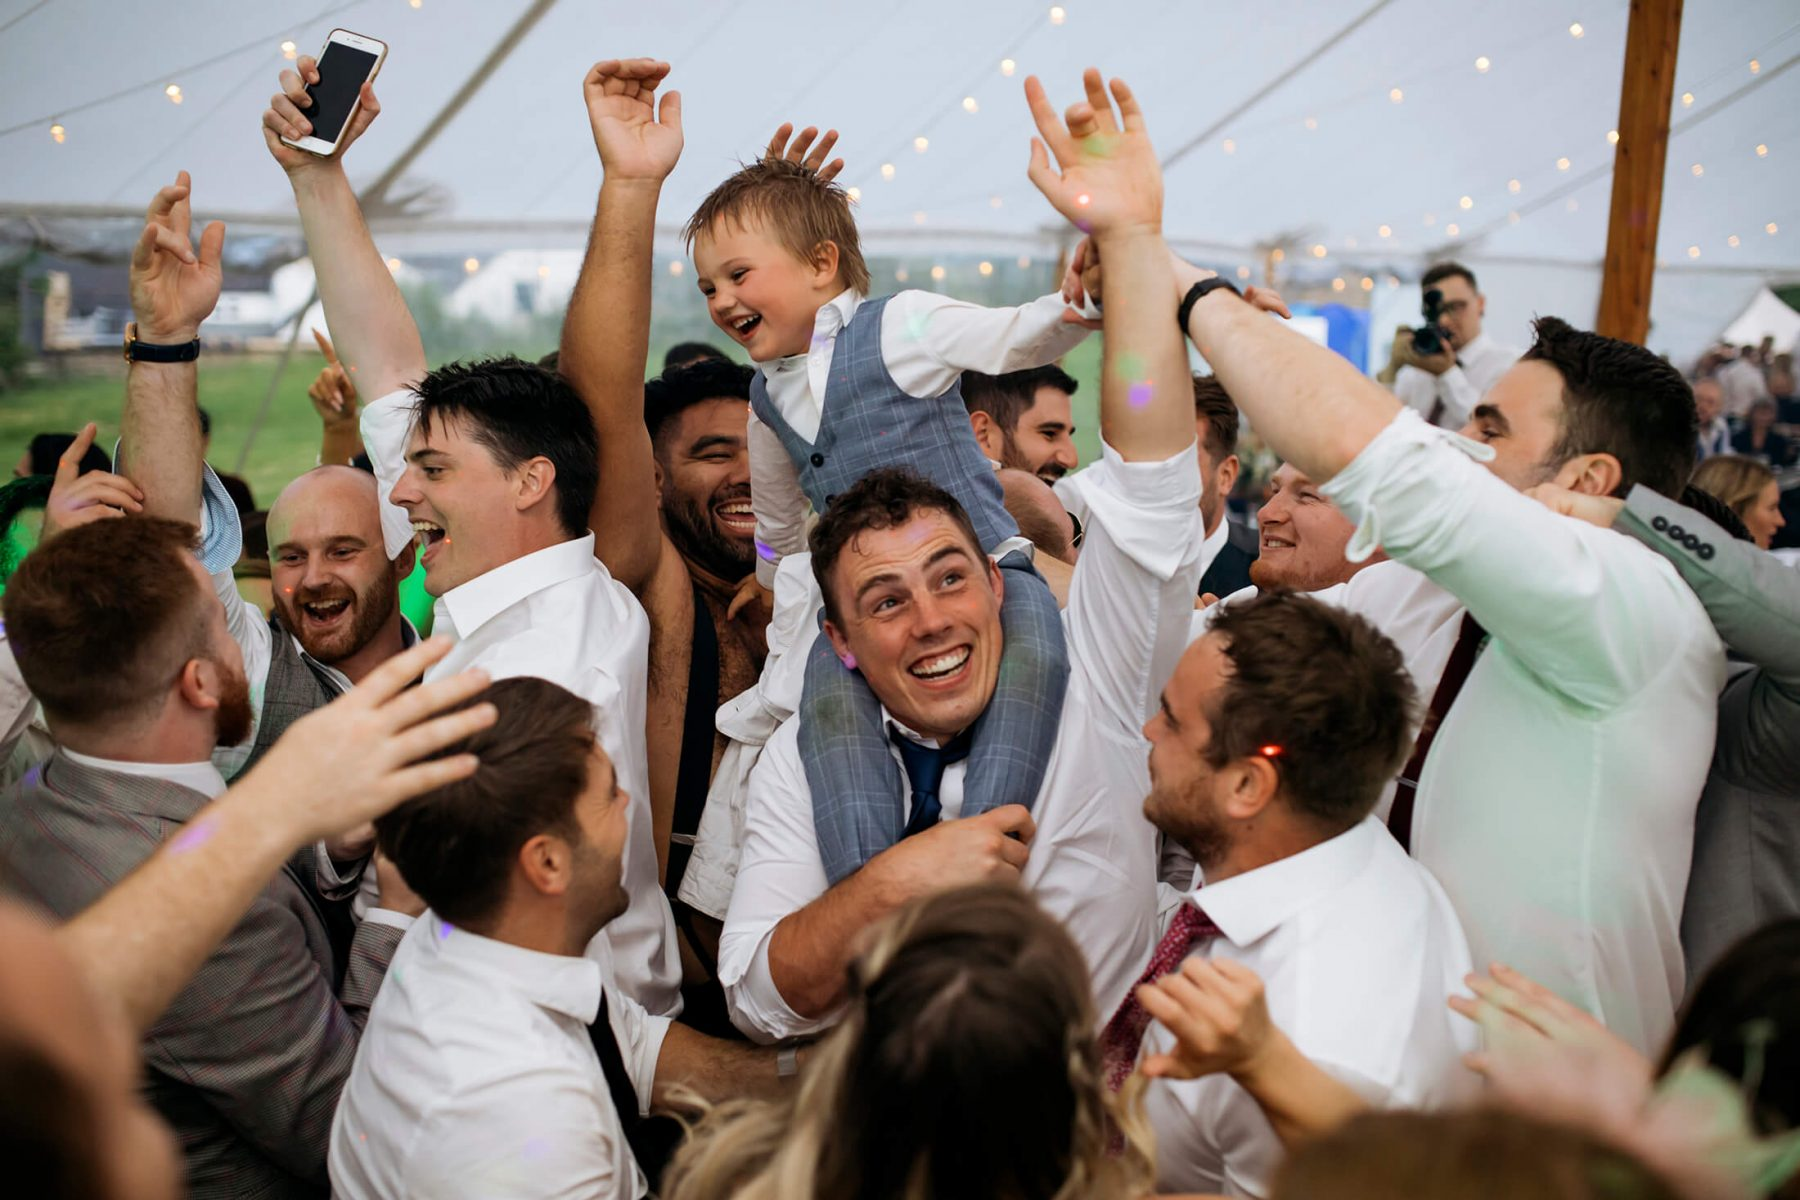 A child on an adults shoulders during the wedding party